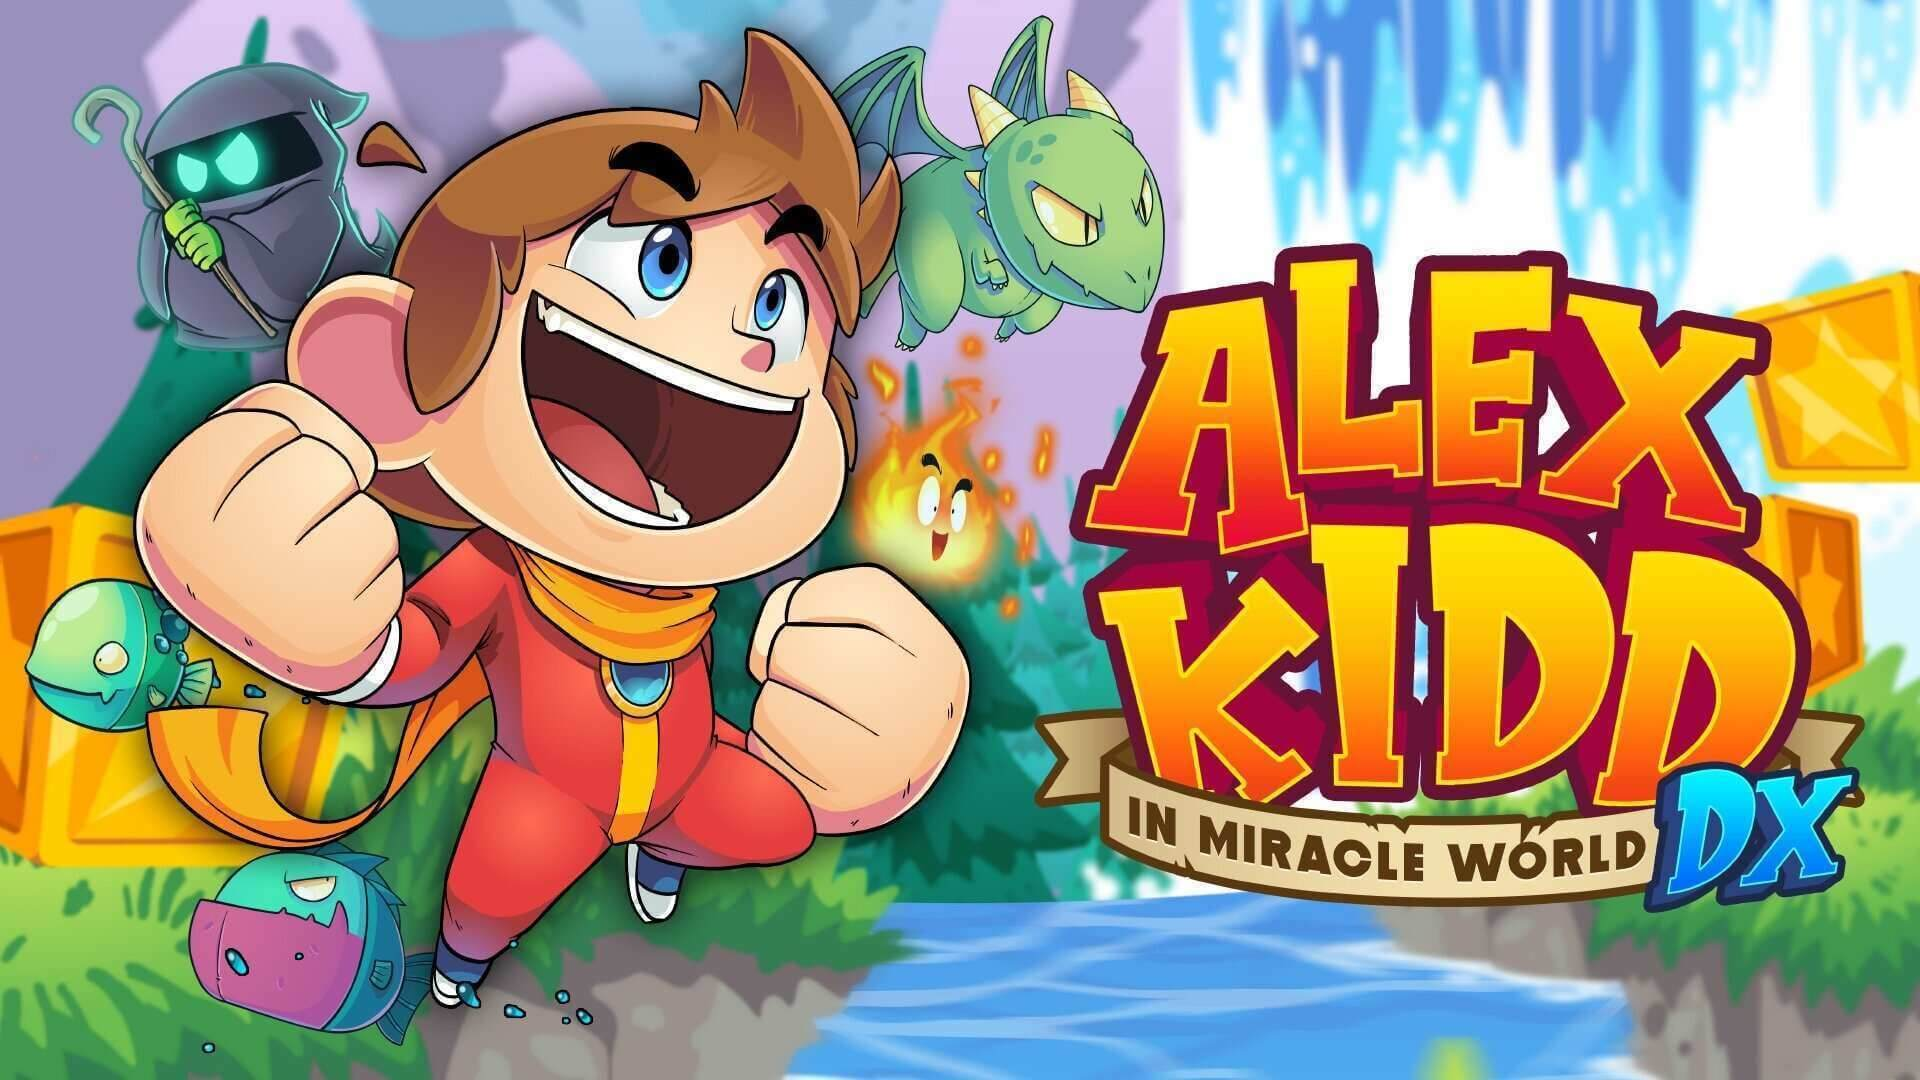 El remake Alex Kidd in Miracle World DX llegará a PS5 y PS4 en junio